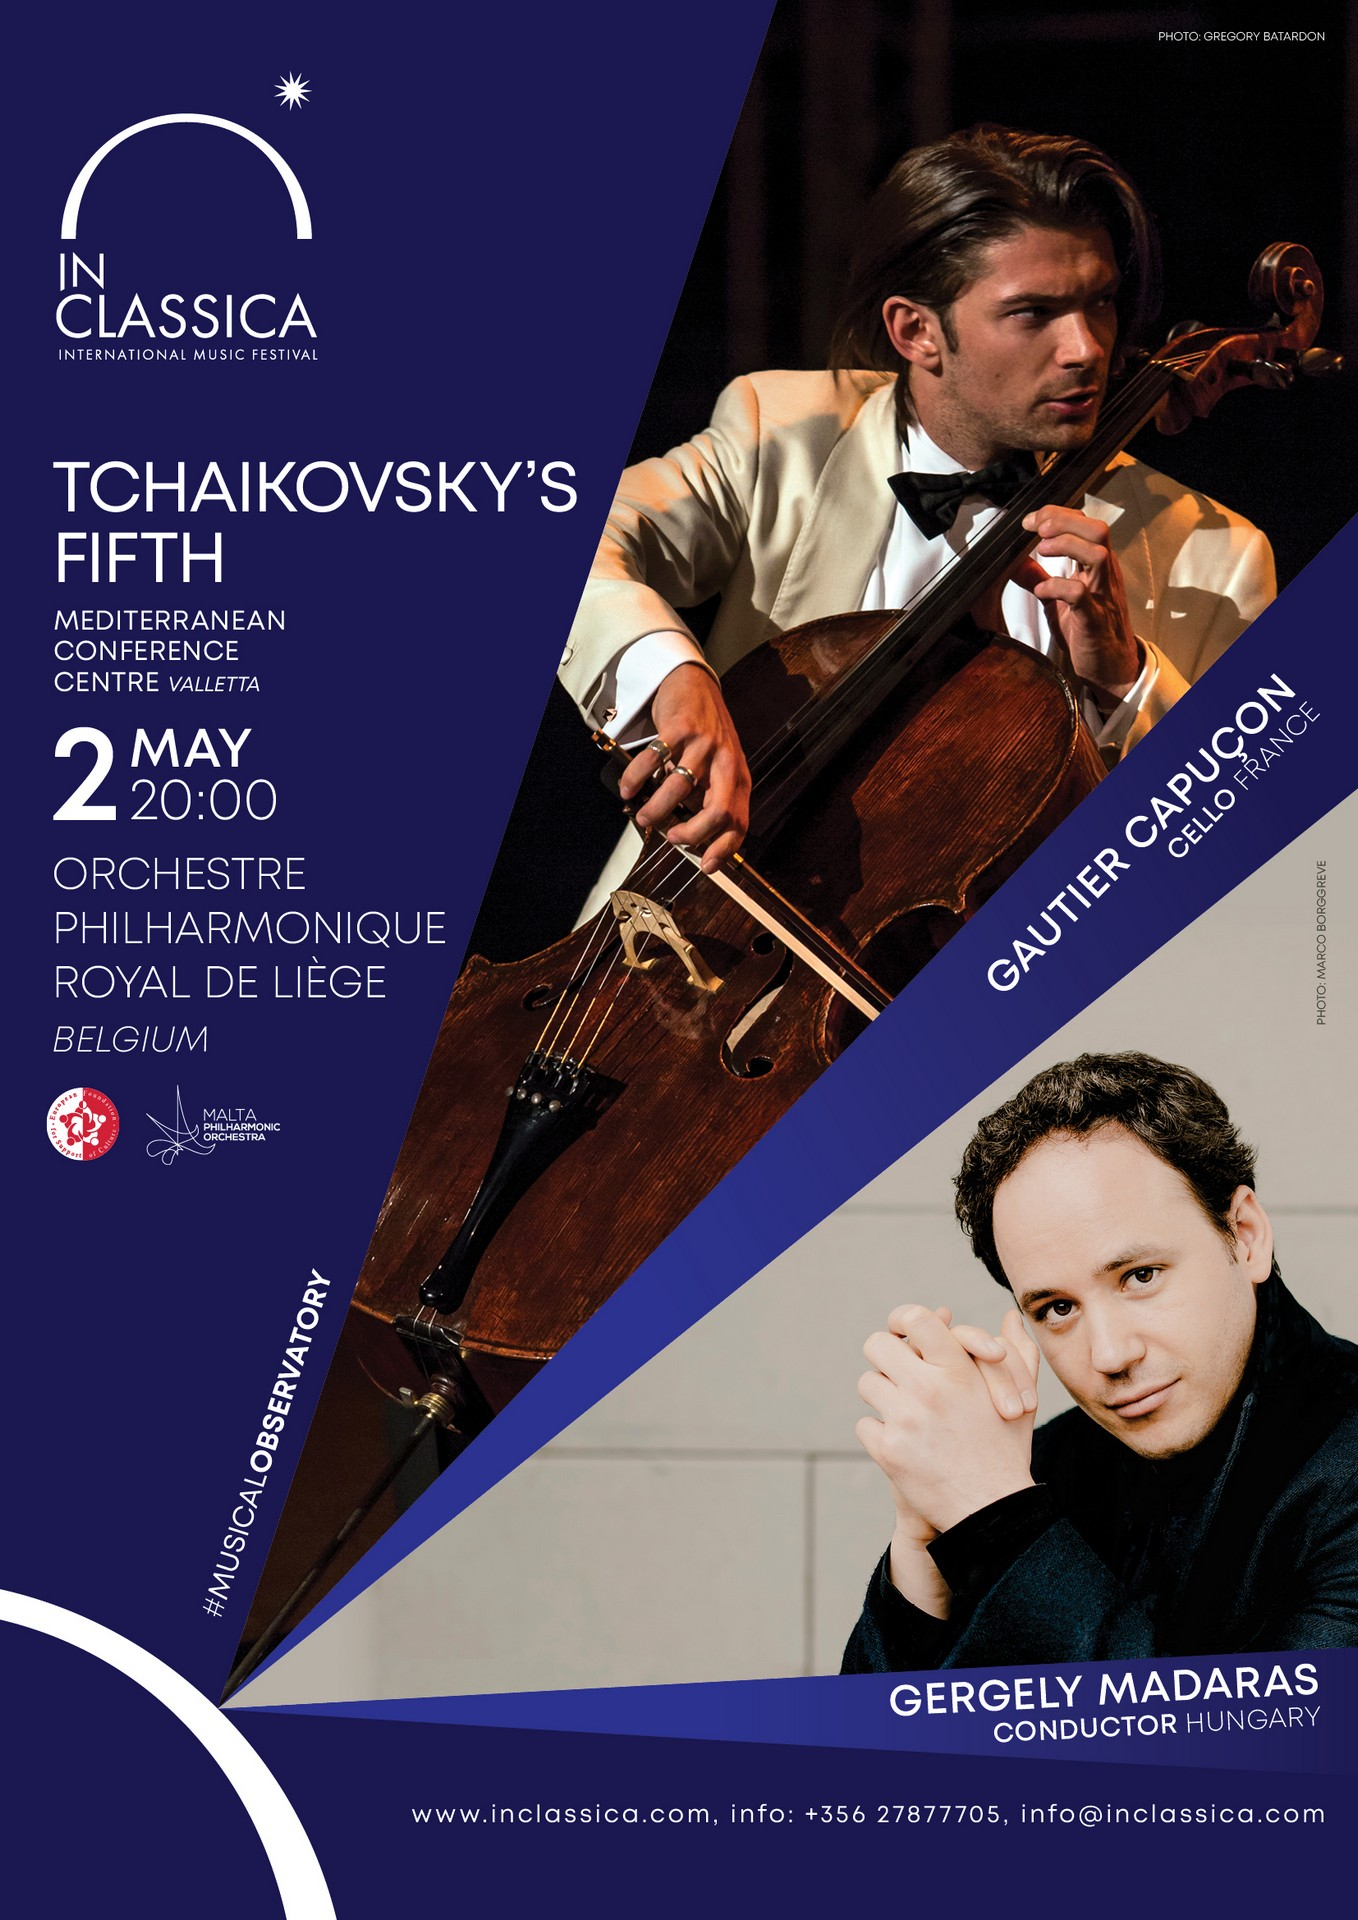 TCHAIKOVSKY'S FIFTH flyer